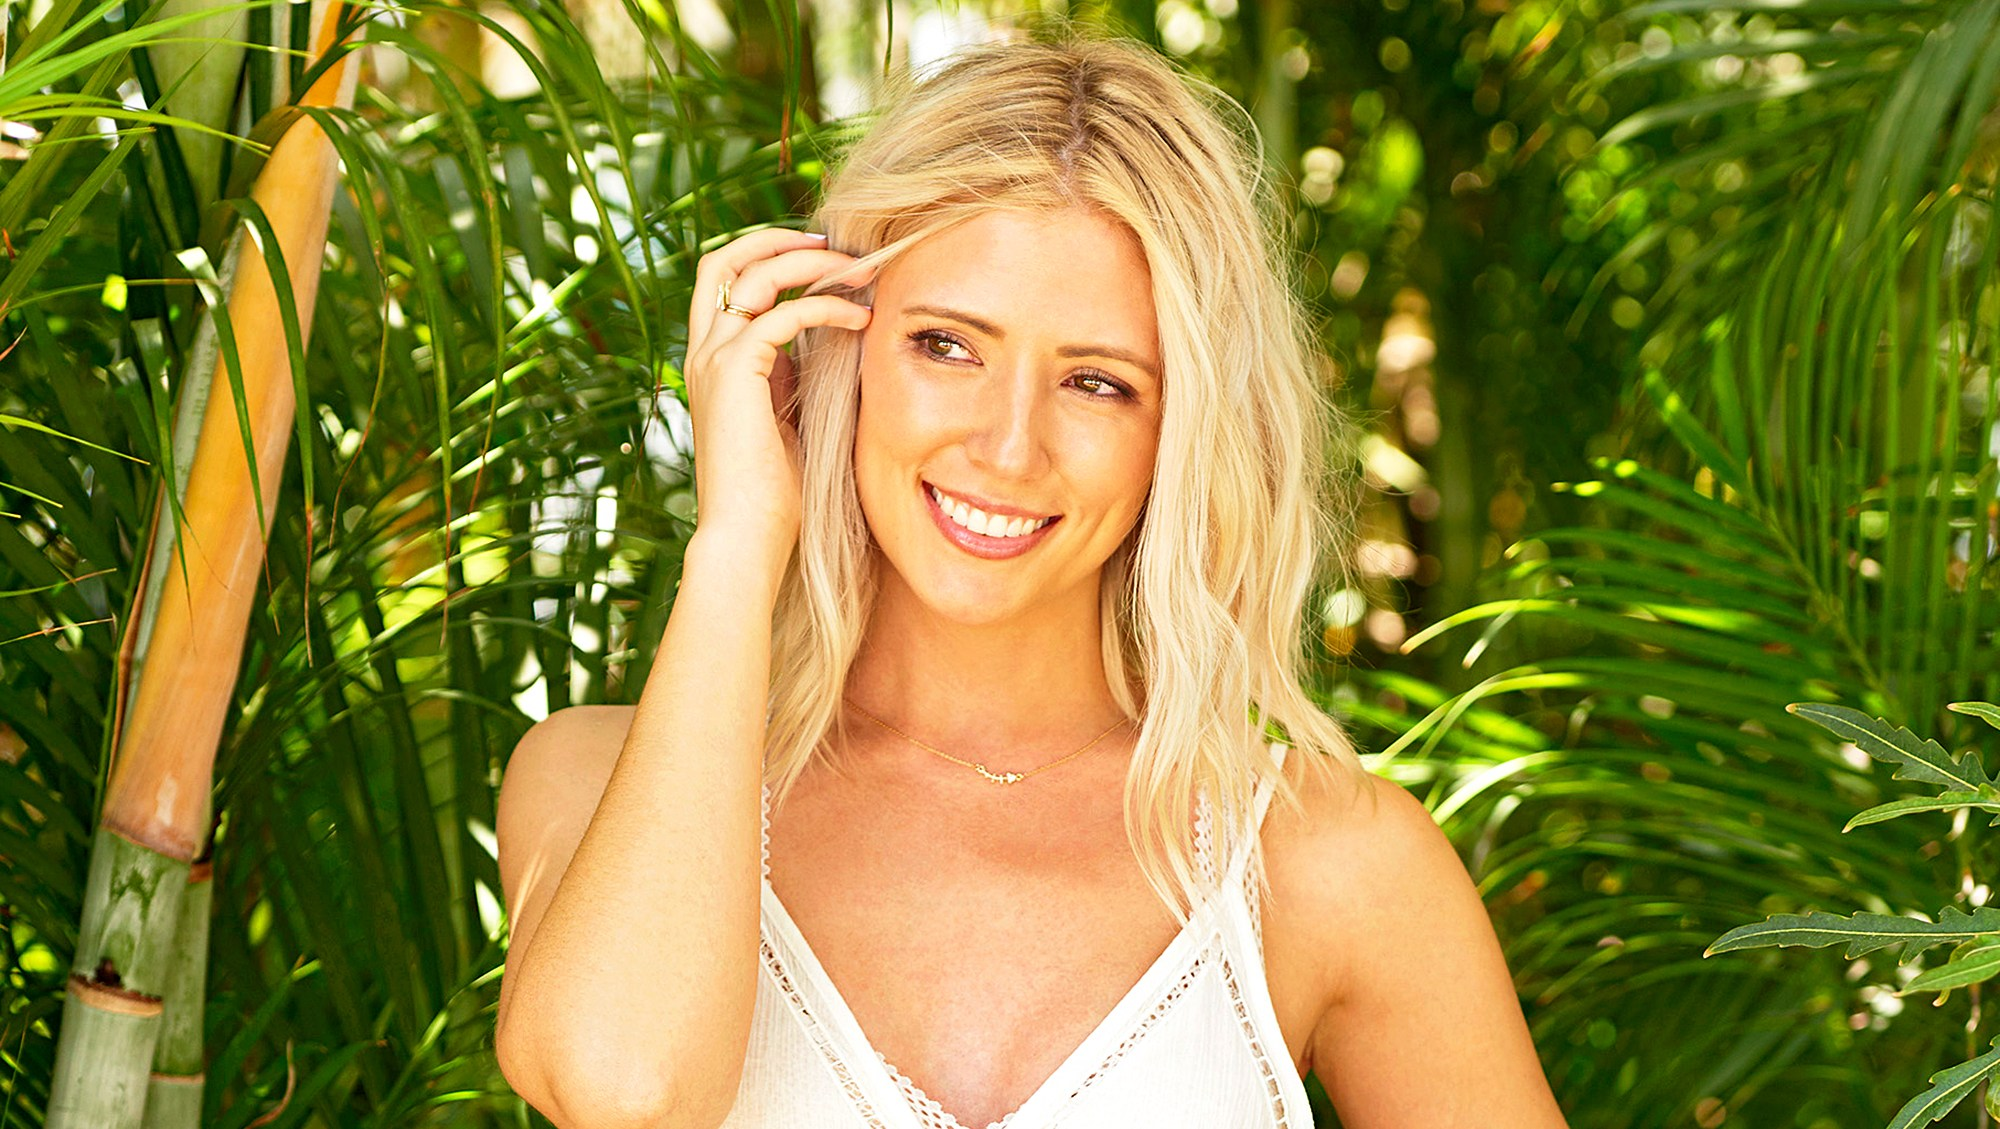 Danielle Maltby on 'Bachelor in Paradise'